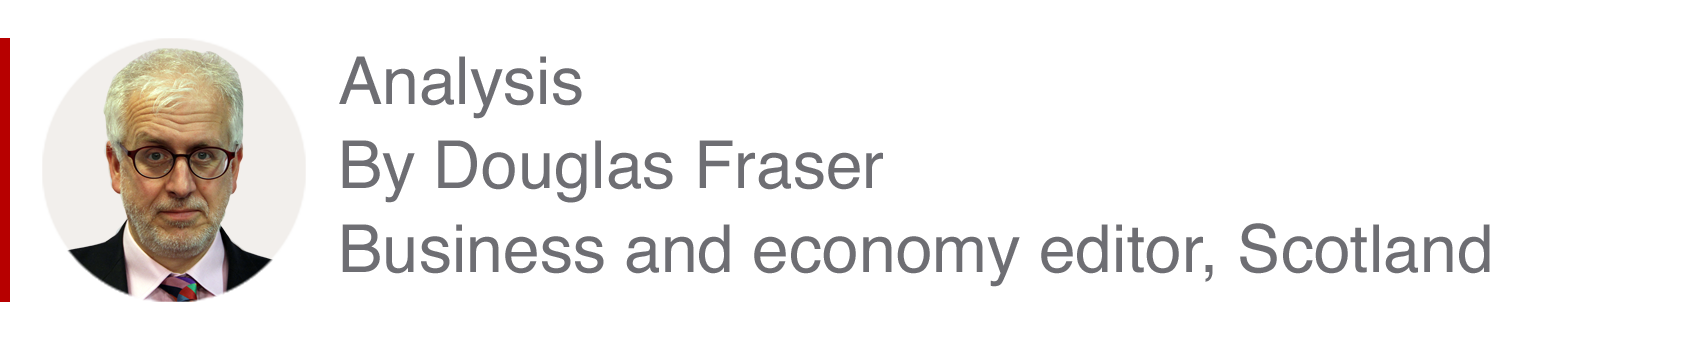 Analysis box by Douglas Fraser, business and economy editor, Scotland